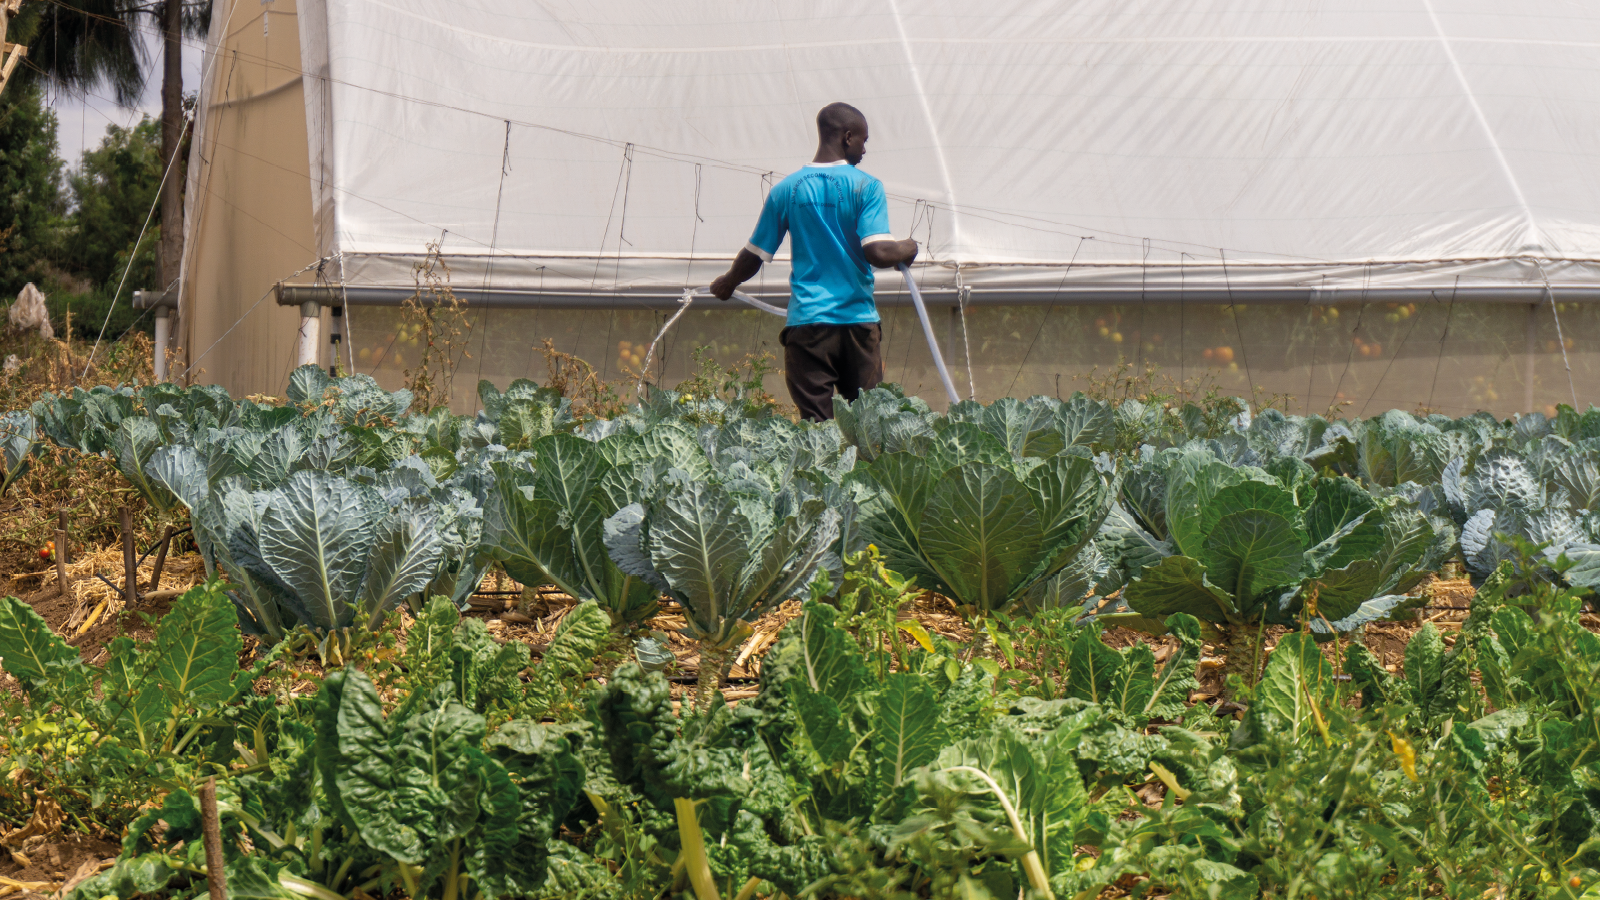 A farmer irrigating his land with rows of cabbages and a greenhouse